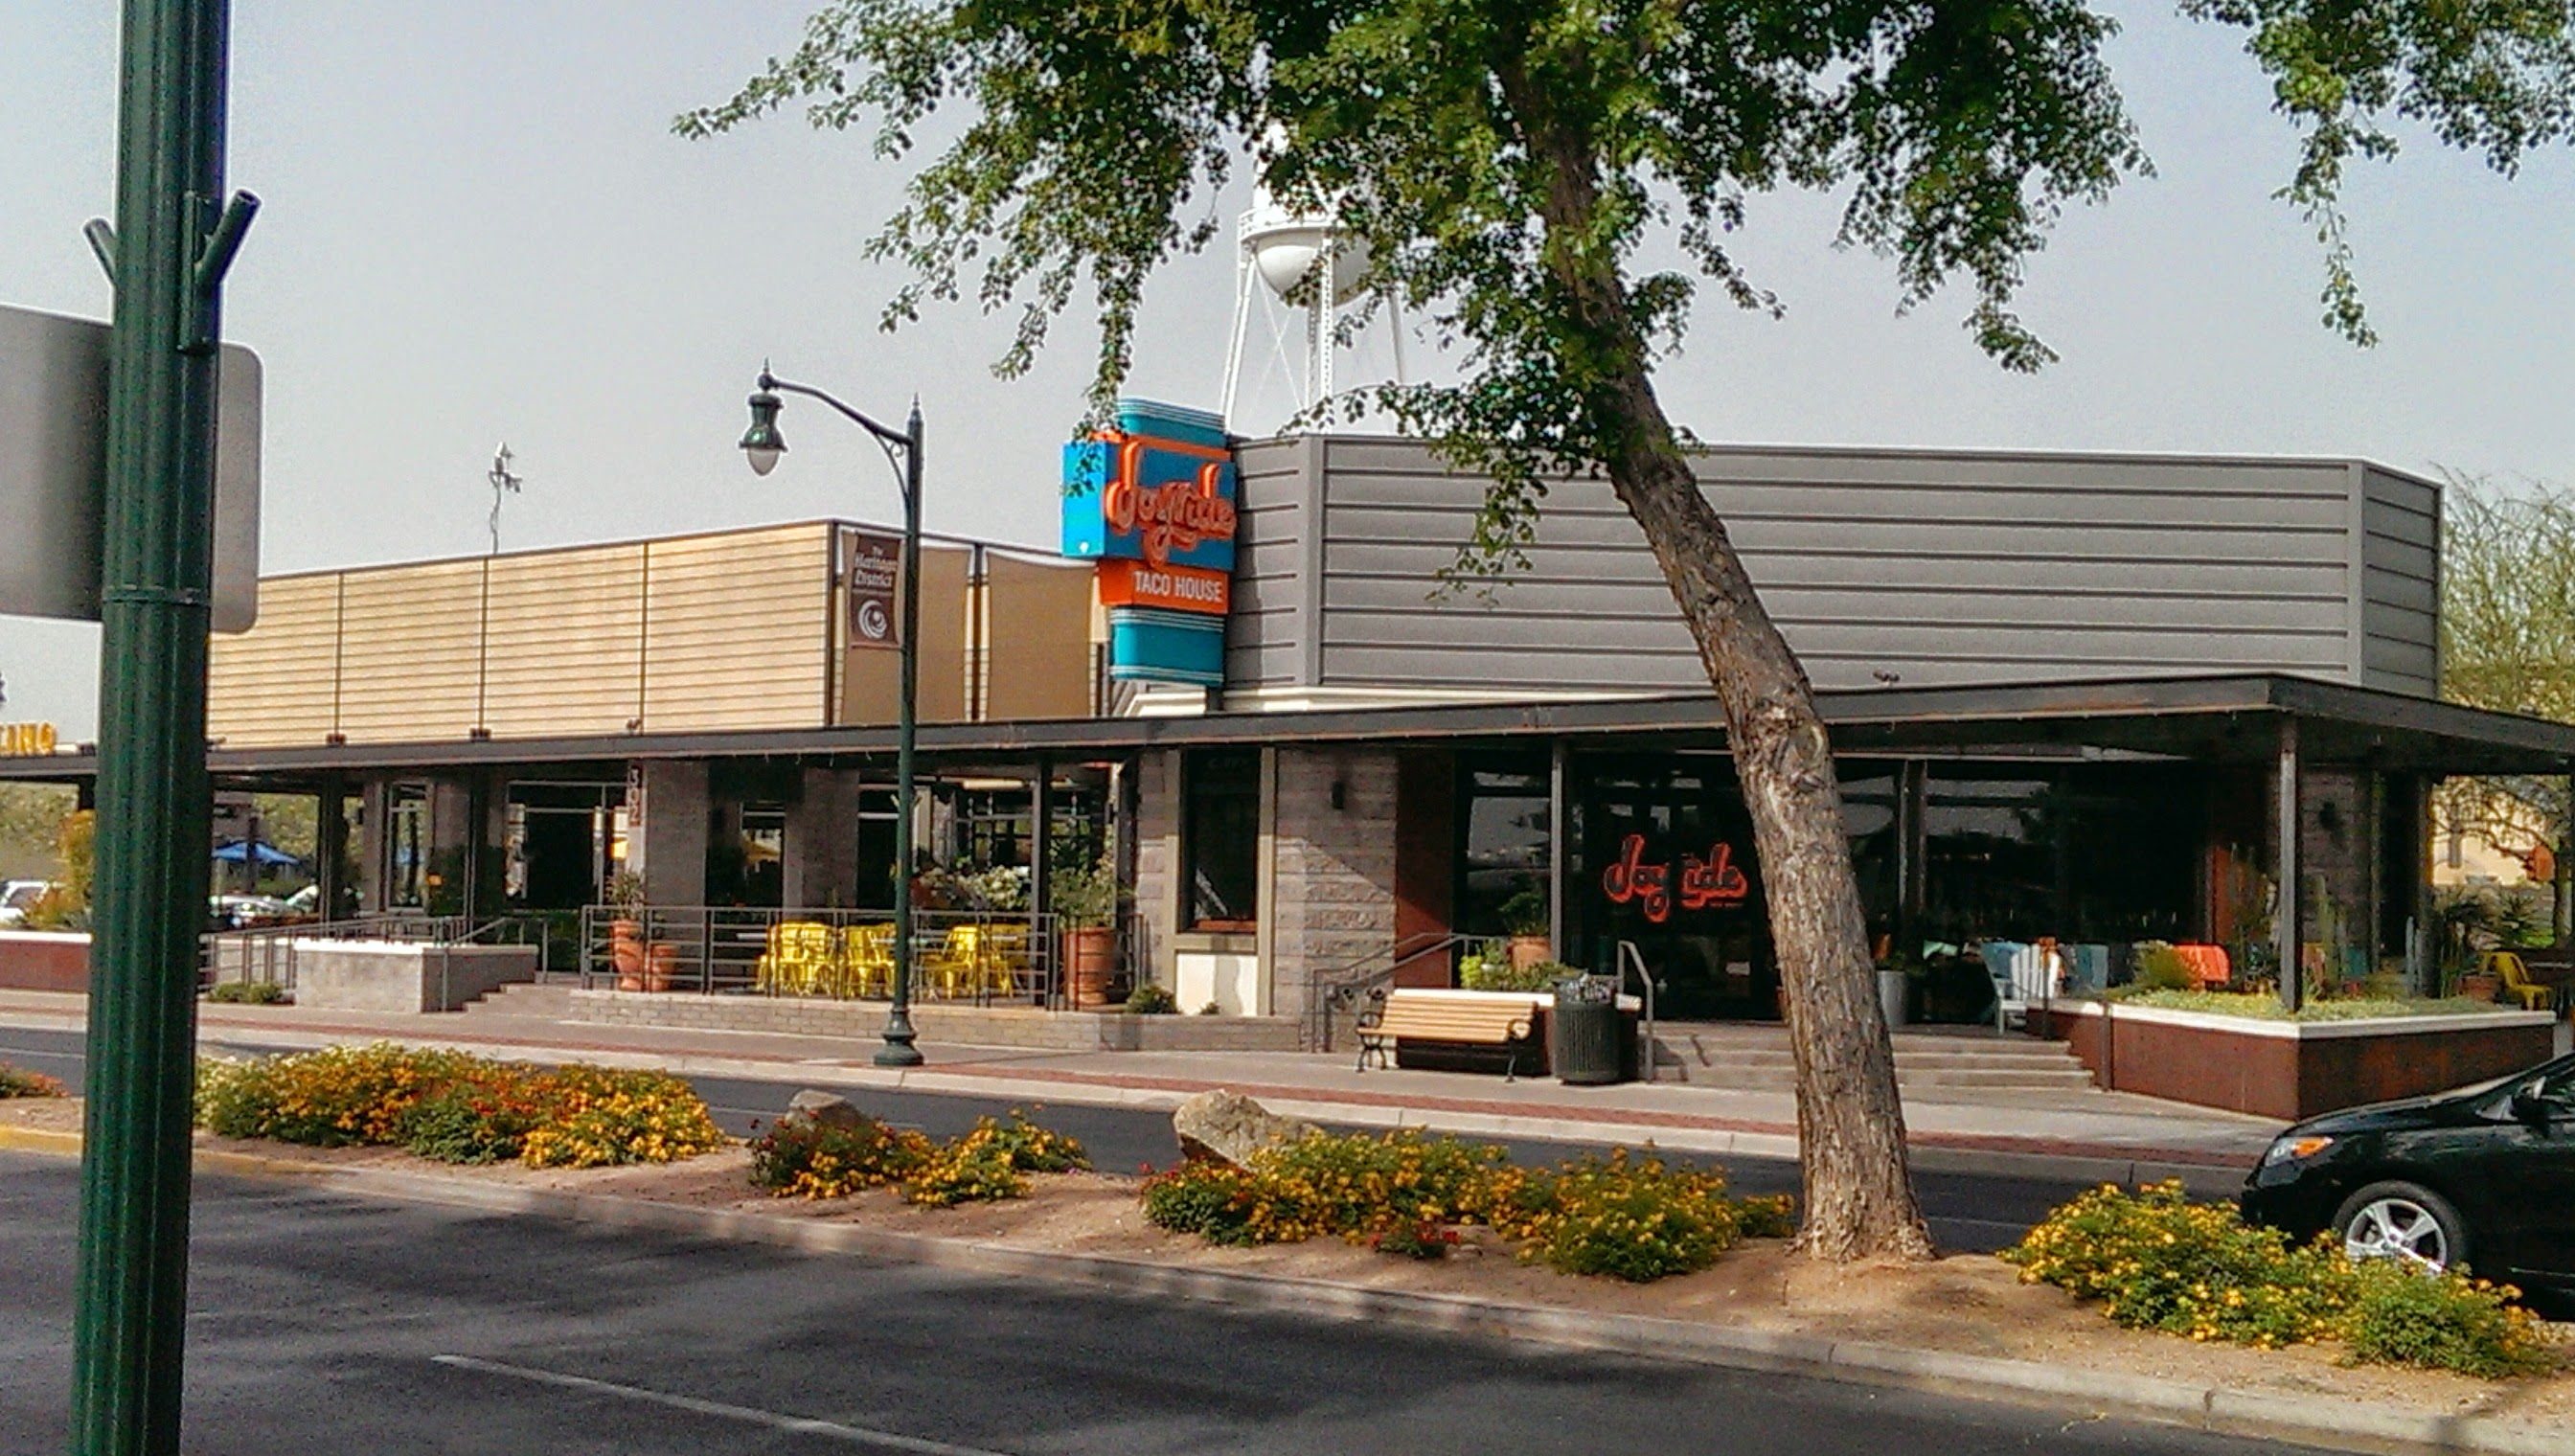 Picture of Businesses in Downtown Gilbert, Arizona from www.swpremierins.com